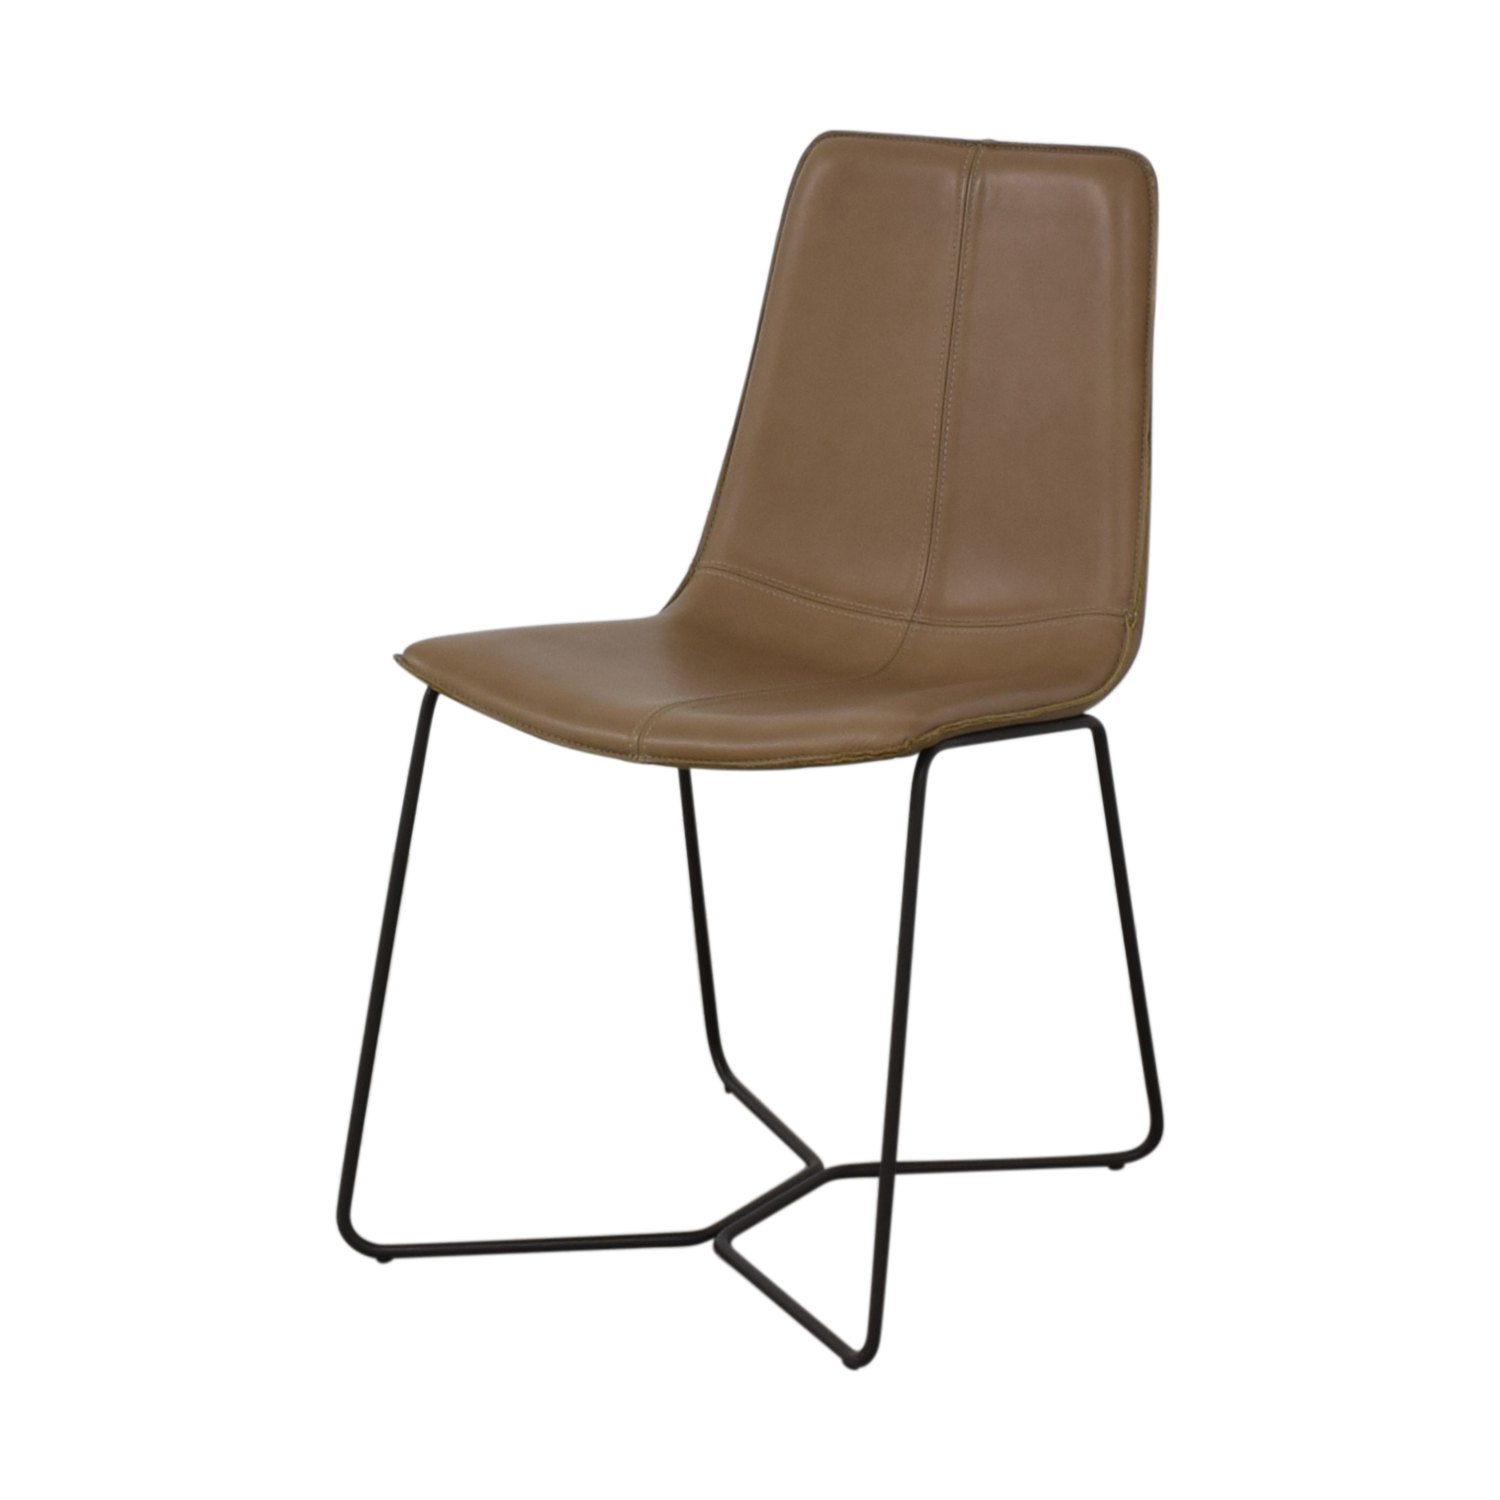 buy West Elm West Elm Leather Slope Dining Chair online